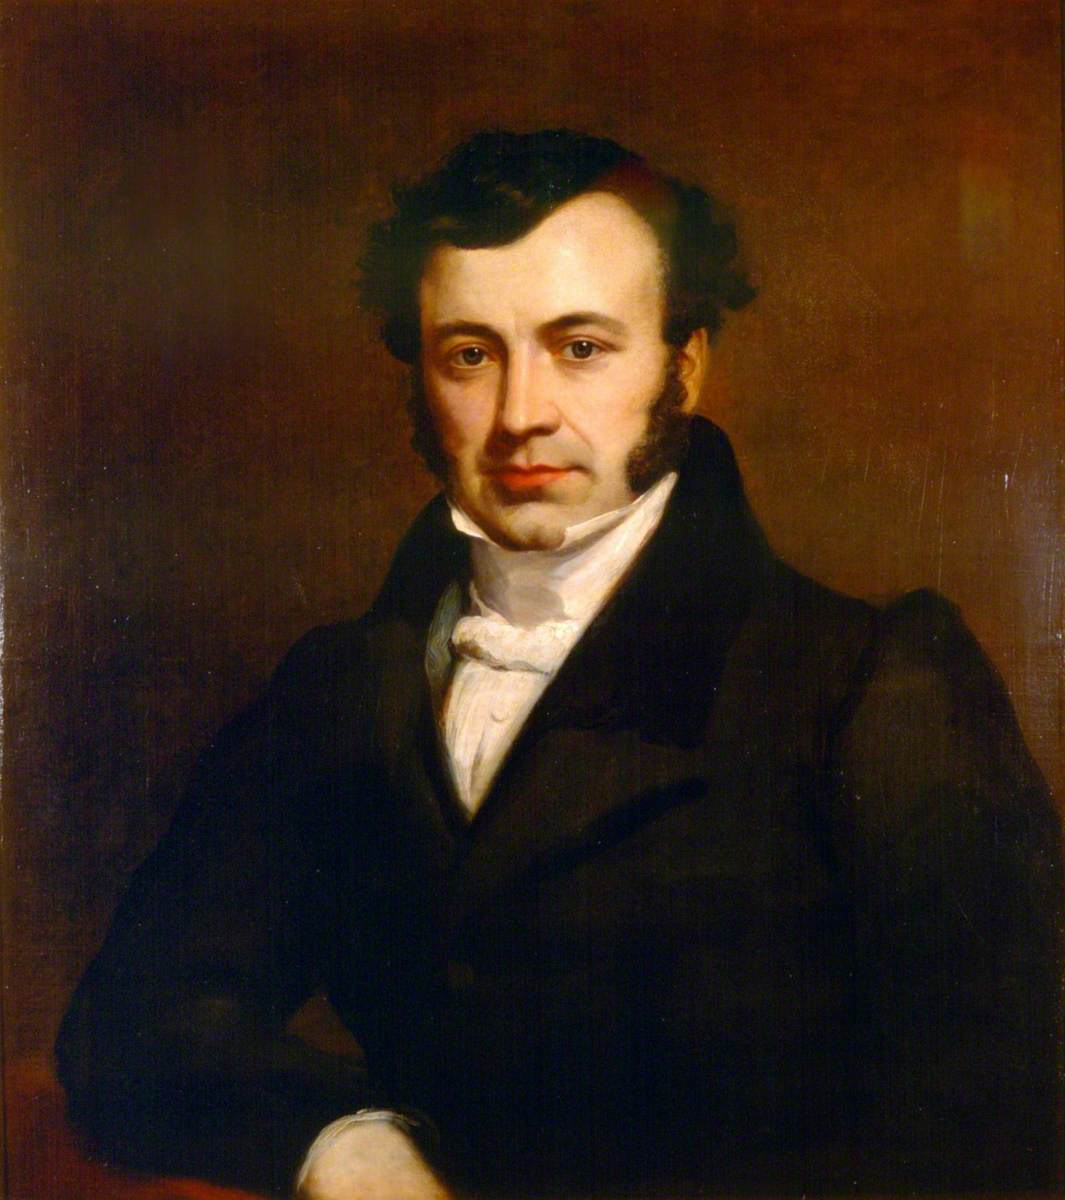 Charles Dinneford (c.1790–1846), Founder and Member of the First Council of the Pharmaceutical Society